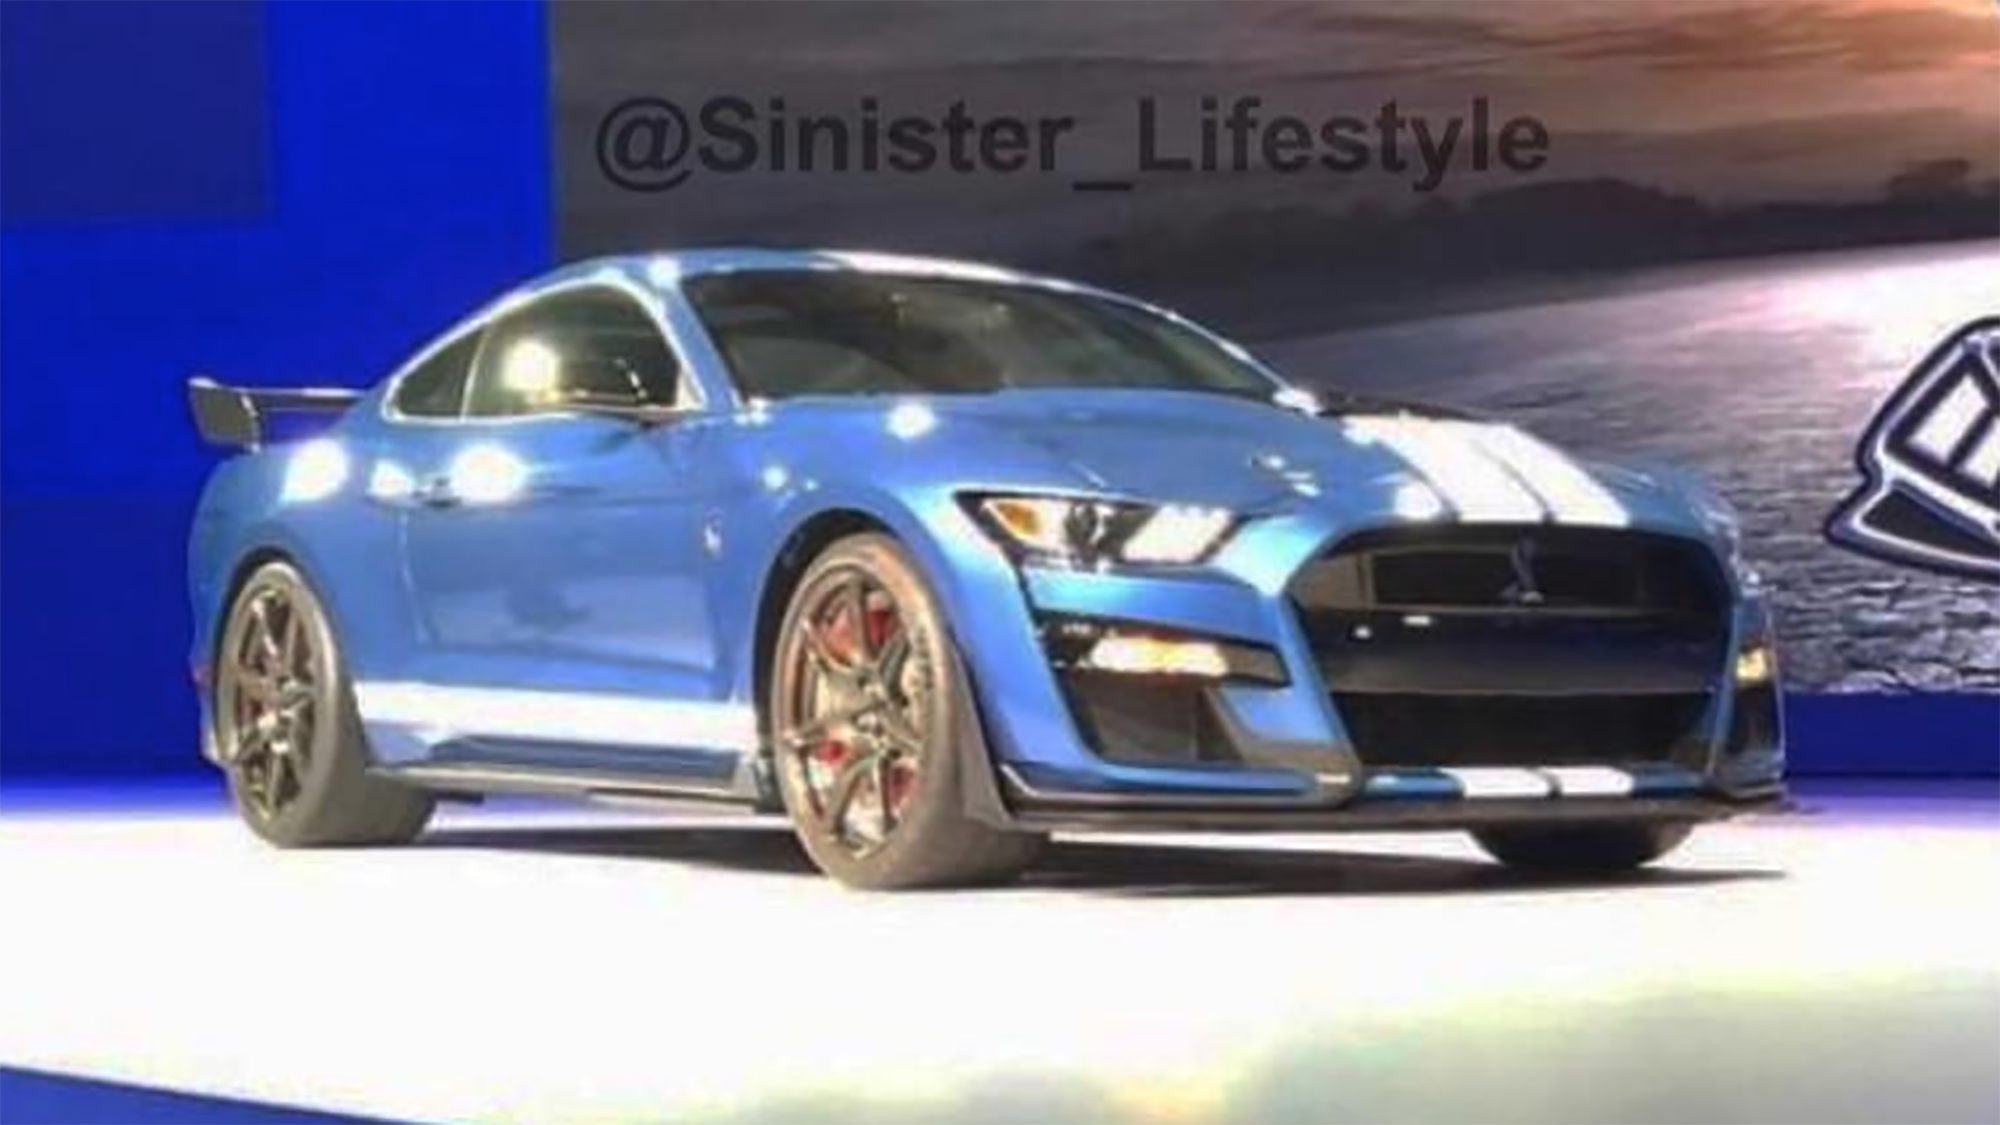 The ford mustang shelby gt500 has been ousted on social media giving us a first look at the manic pony snake flagship posted on instagram by user